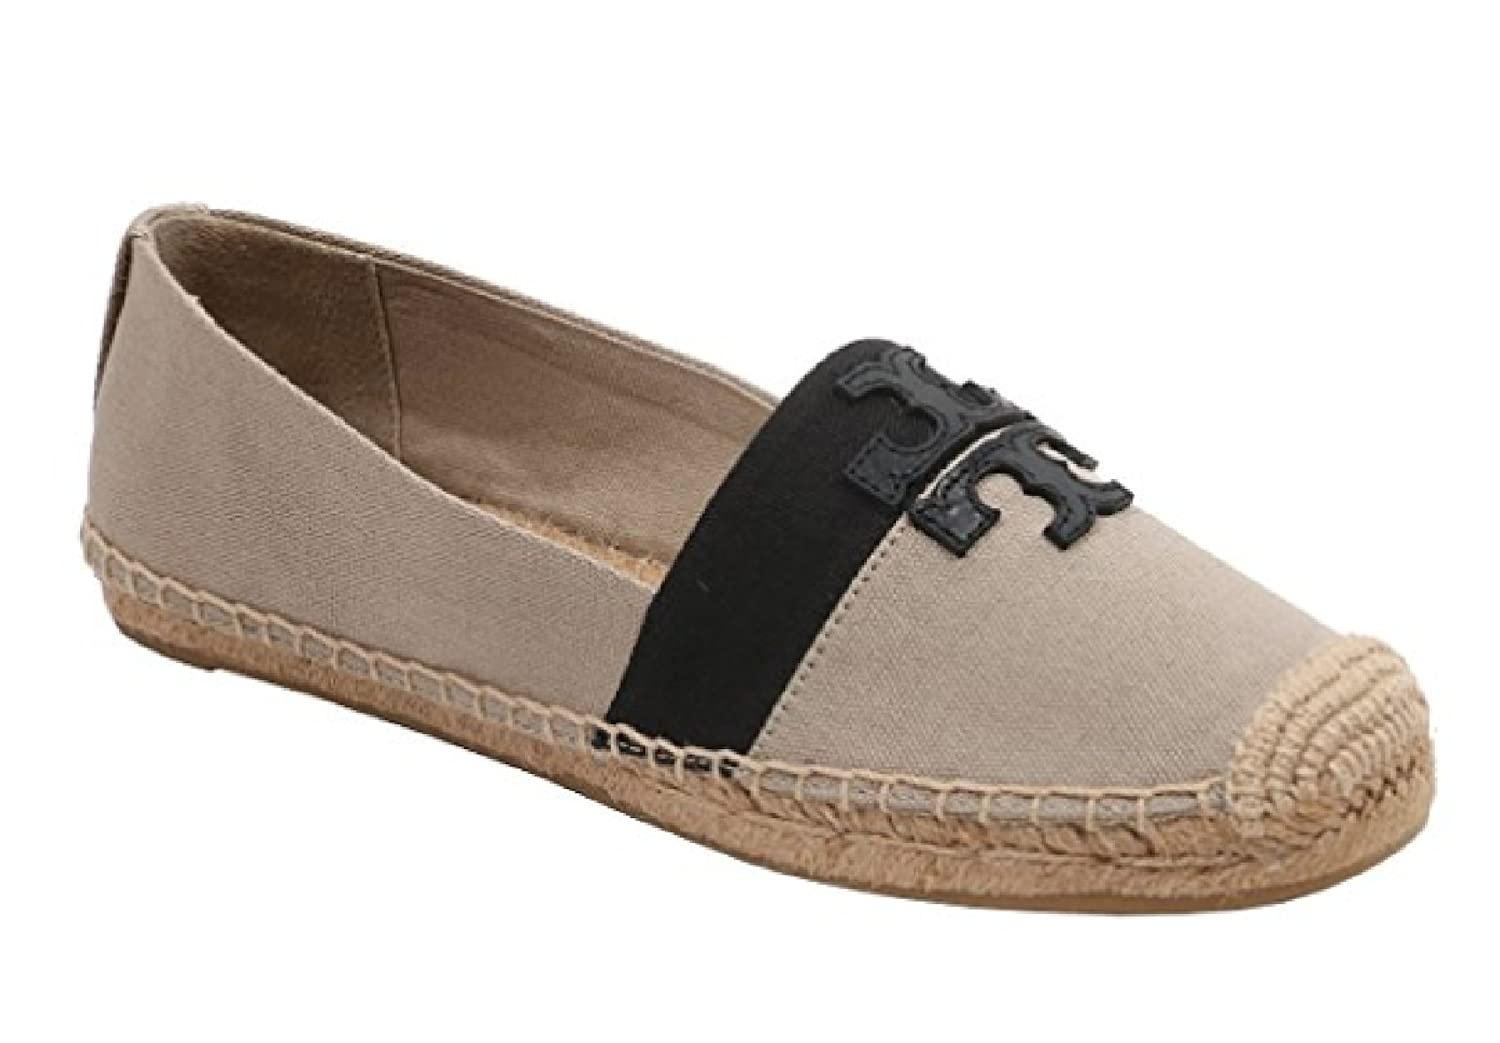 ab5429c0bb6 Amazon.com  Tory Burch Weston Flat Espadrille Shoes Natural Black 7.5  Home    Kitchen